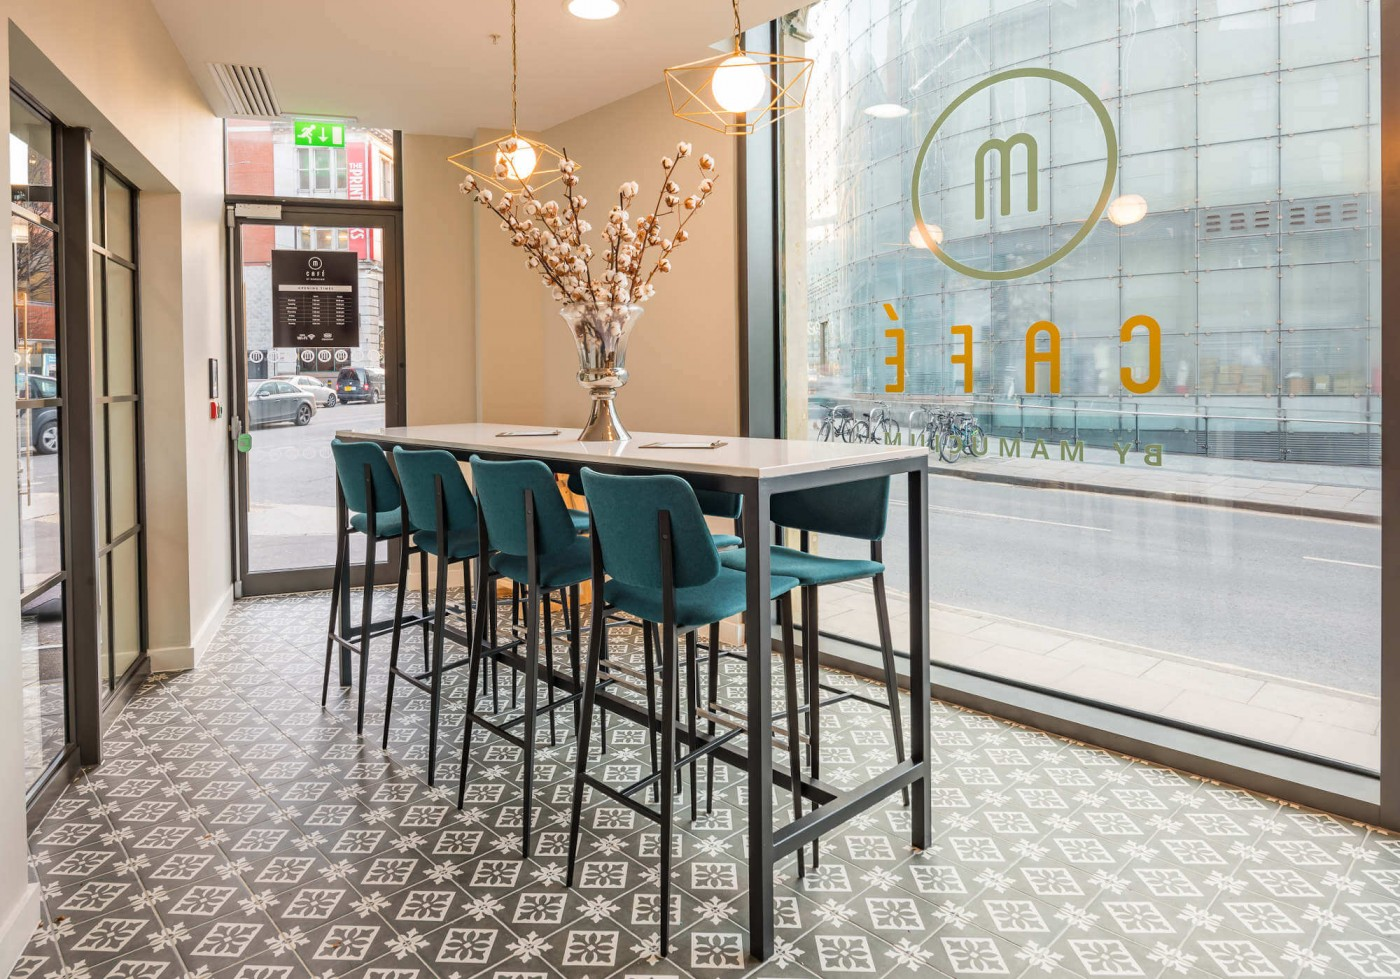 Italian Furniture For Hotels And Restaurants Midj In Italy